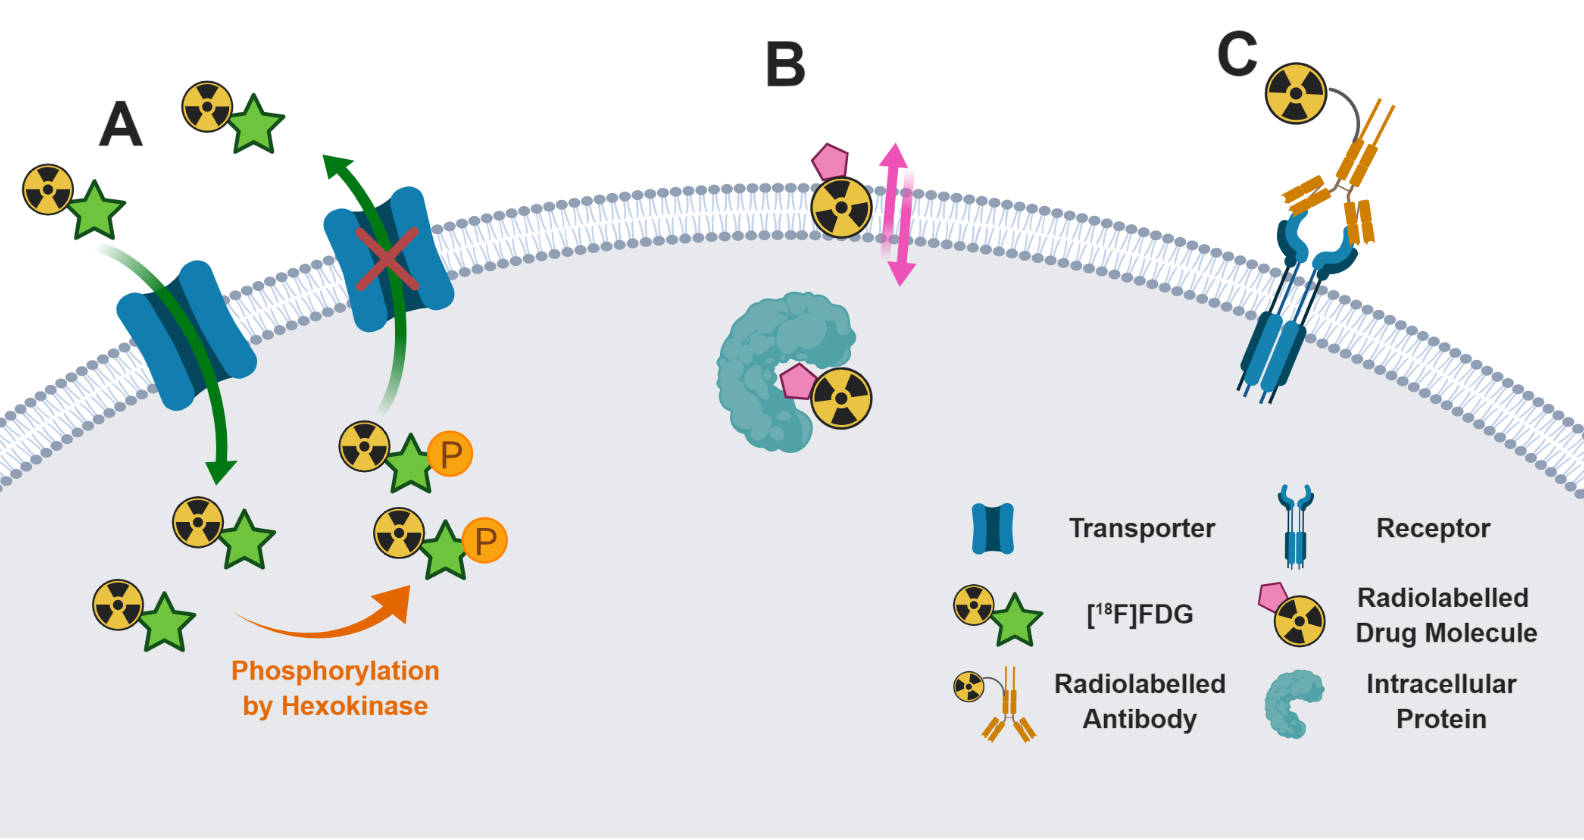 Figure 2. Different radiolabelled scaffolds and their applications.  A) [18F]FDG is transported in to cells where it accumulates due to metabolic trapping subsequent to phosphorylation by hexokinase. B) A radiolabelled drug molecule crosses the cellular membrane and binds to its intracellular protein target. C) Radiolabelled antibodies bind to the extracellular domain of specific receptors.